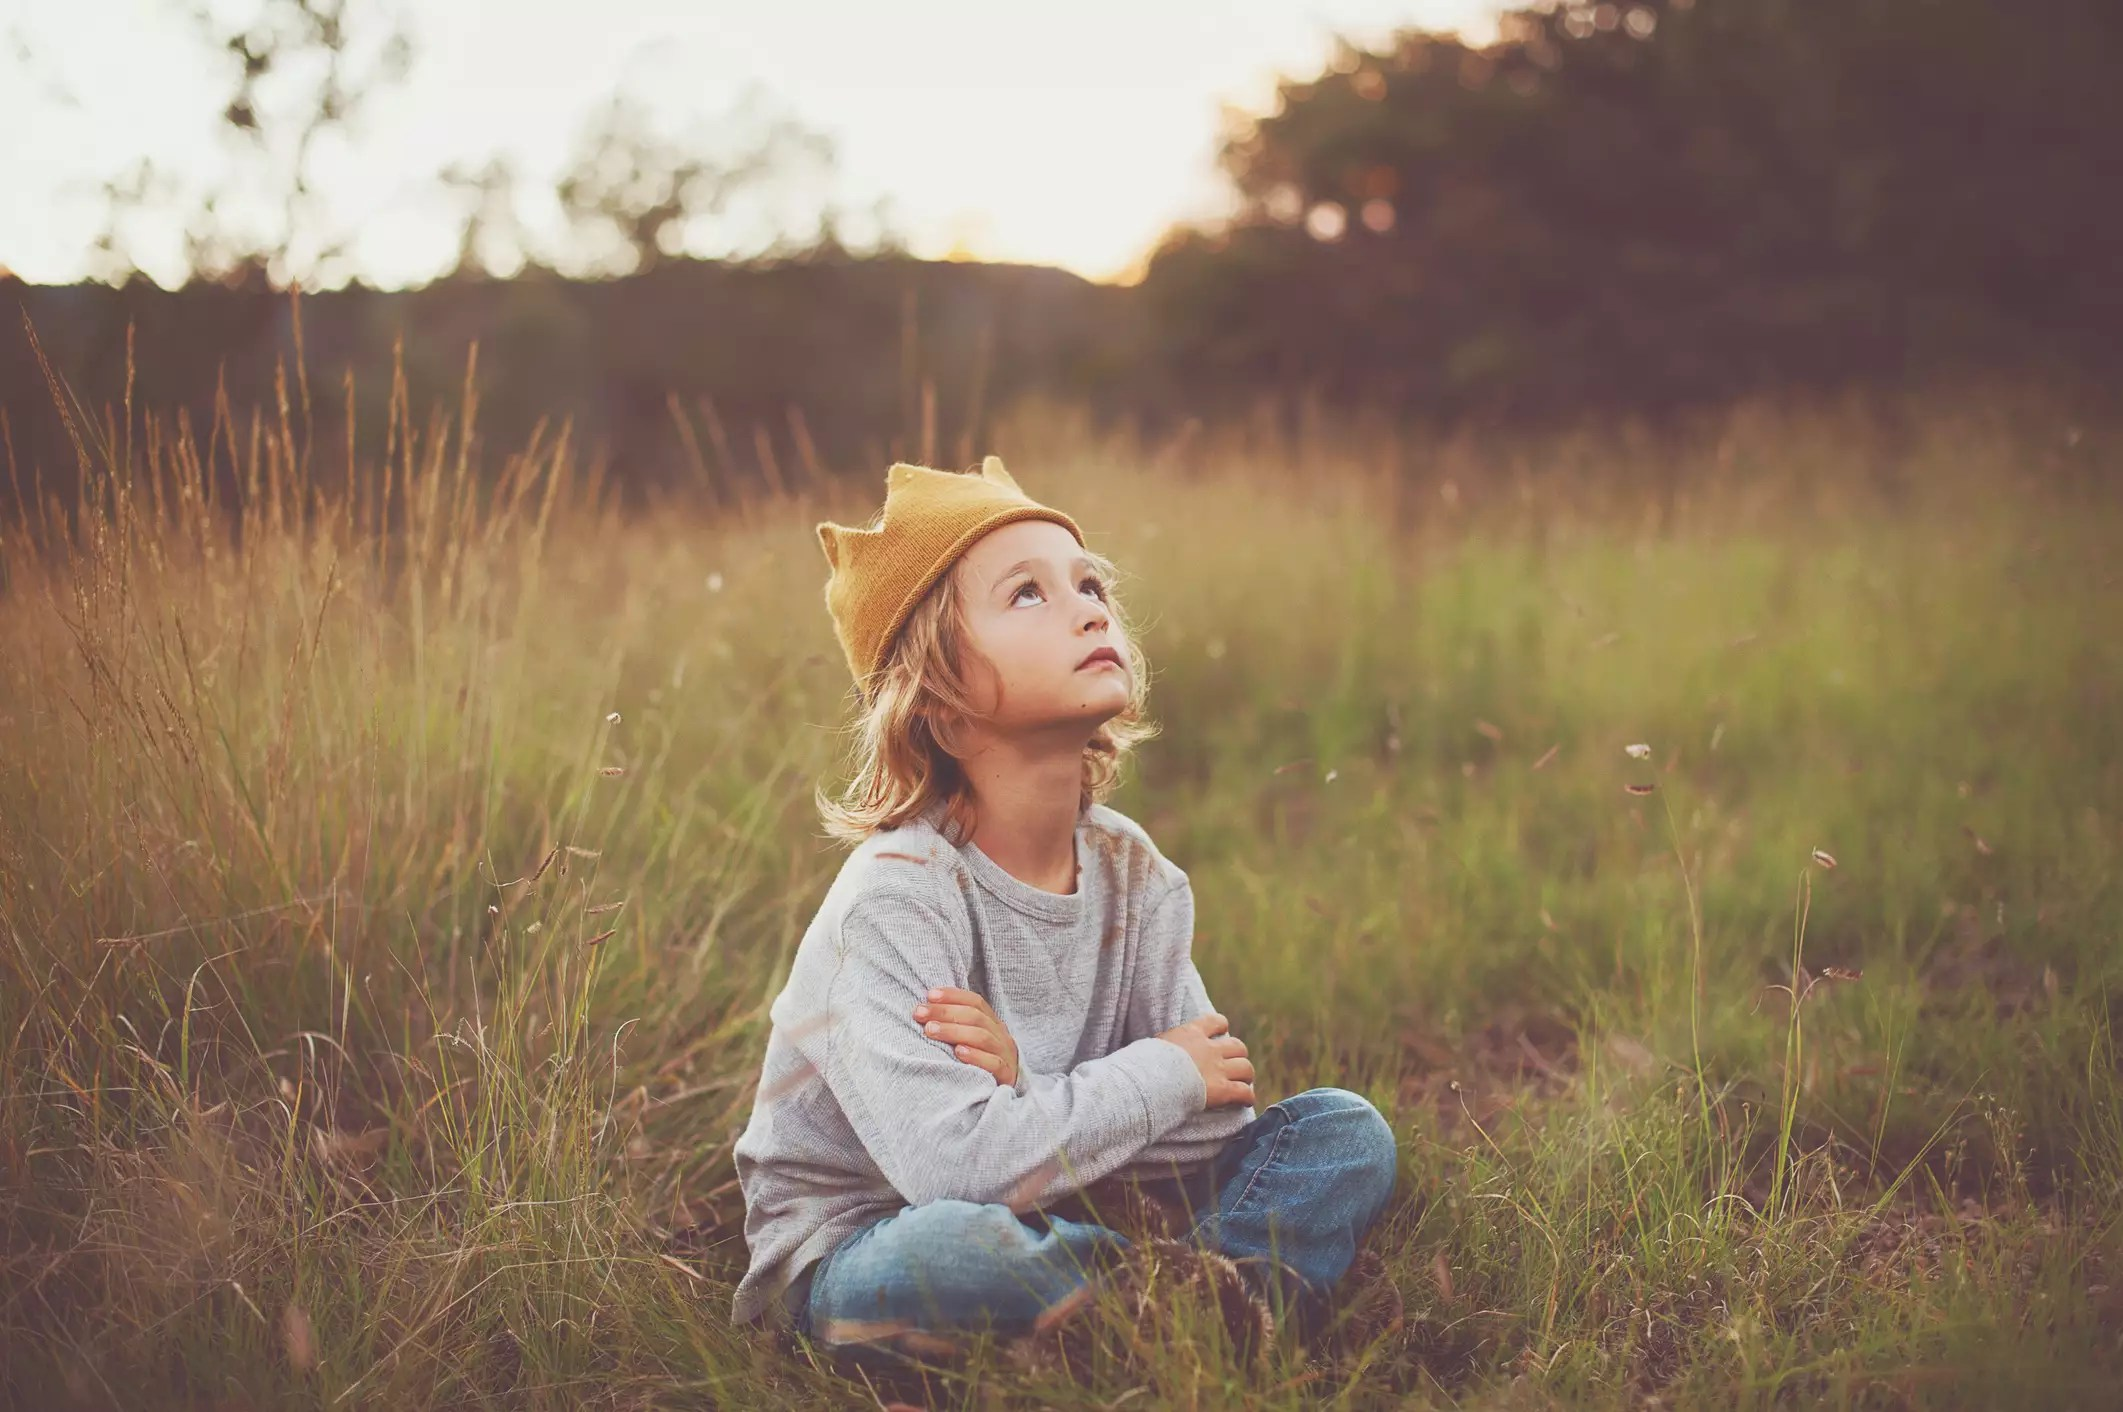 Cute little boy sitting outdoors, wearing crown, looking up at the sky.